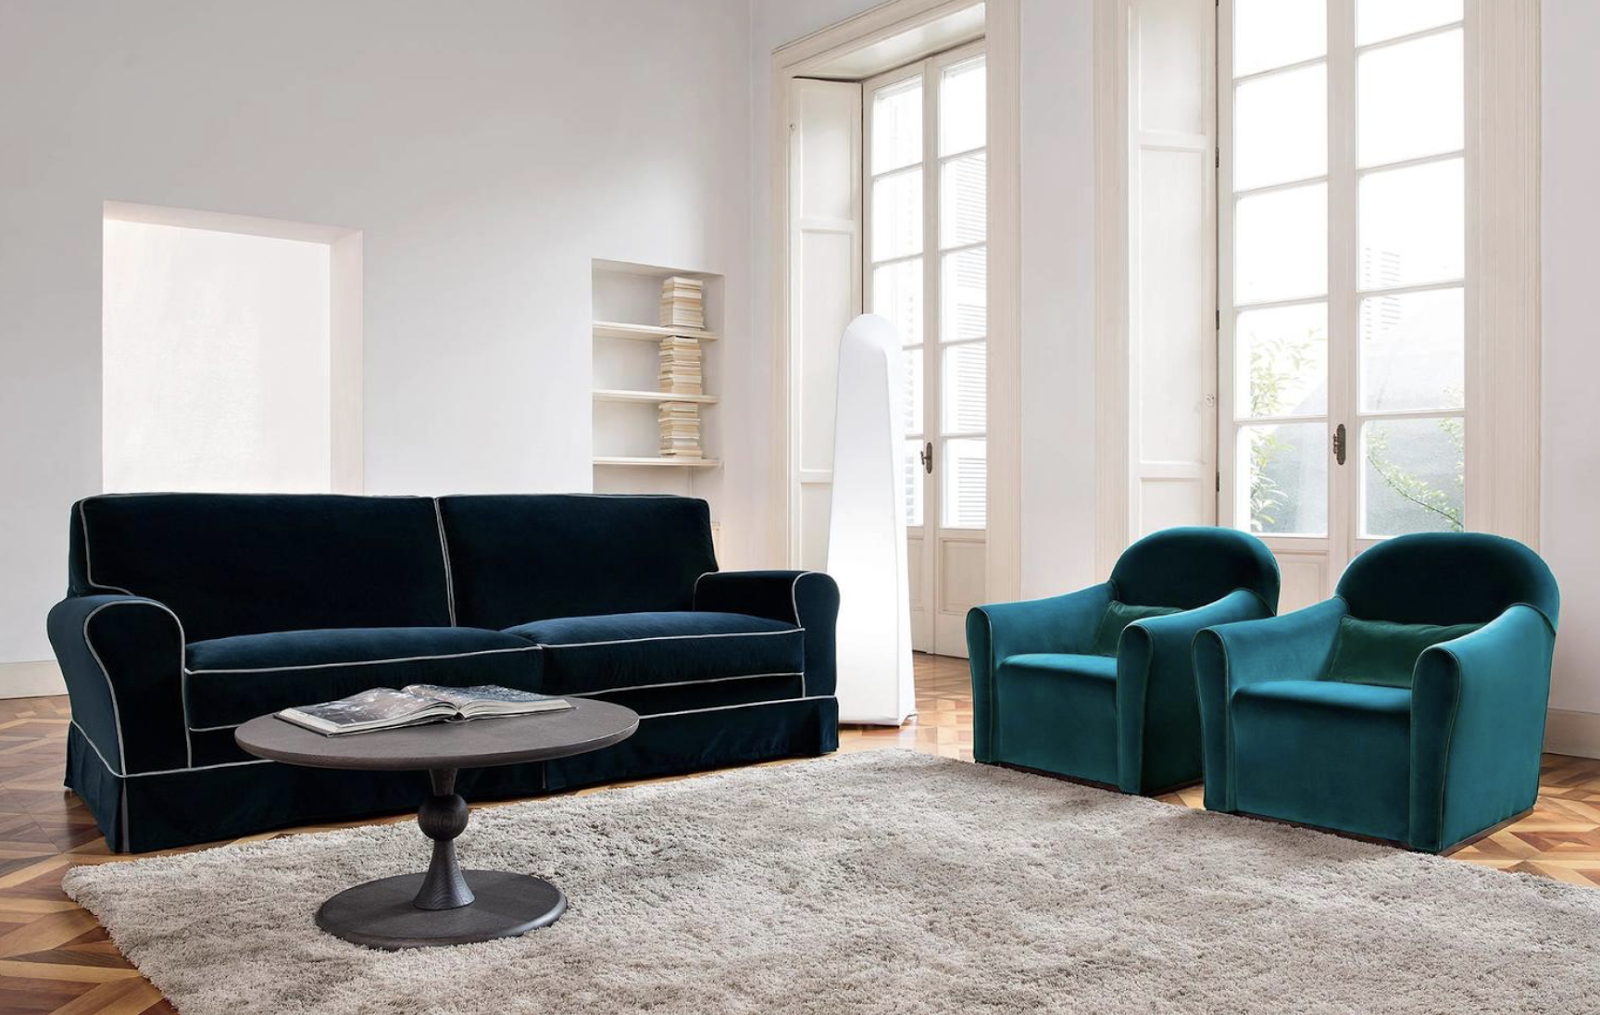 Momentoitalia italian furniture blog an italian for Modern italian furniture